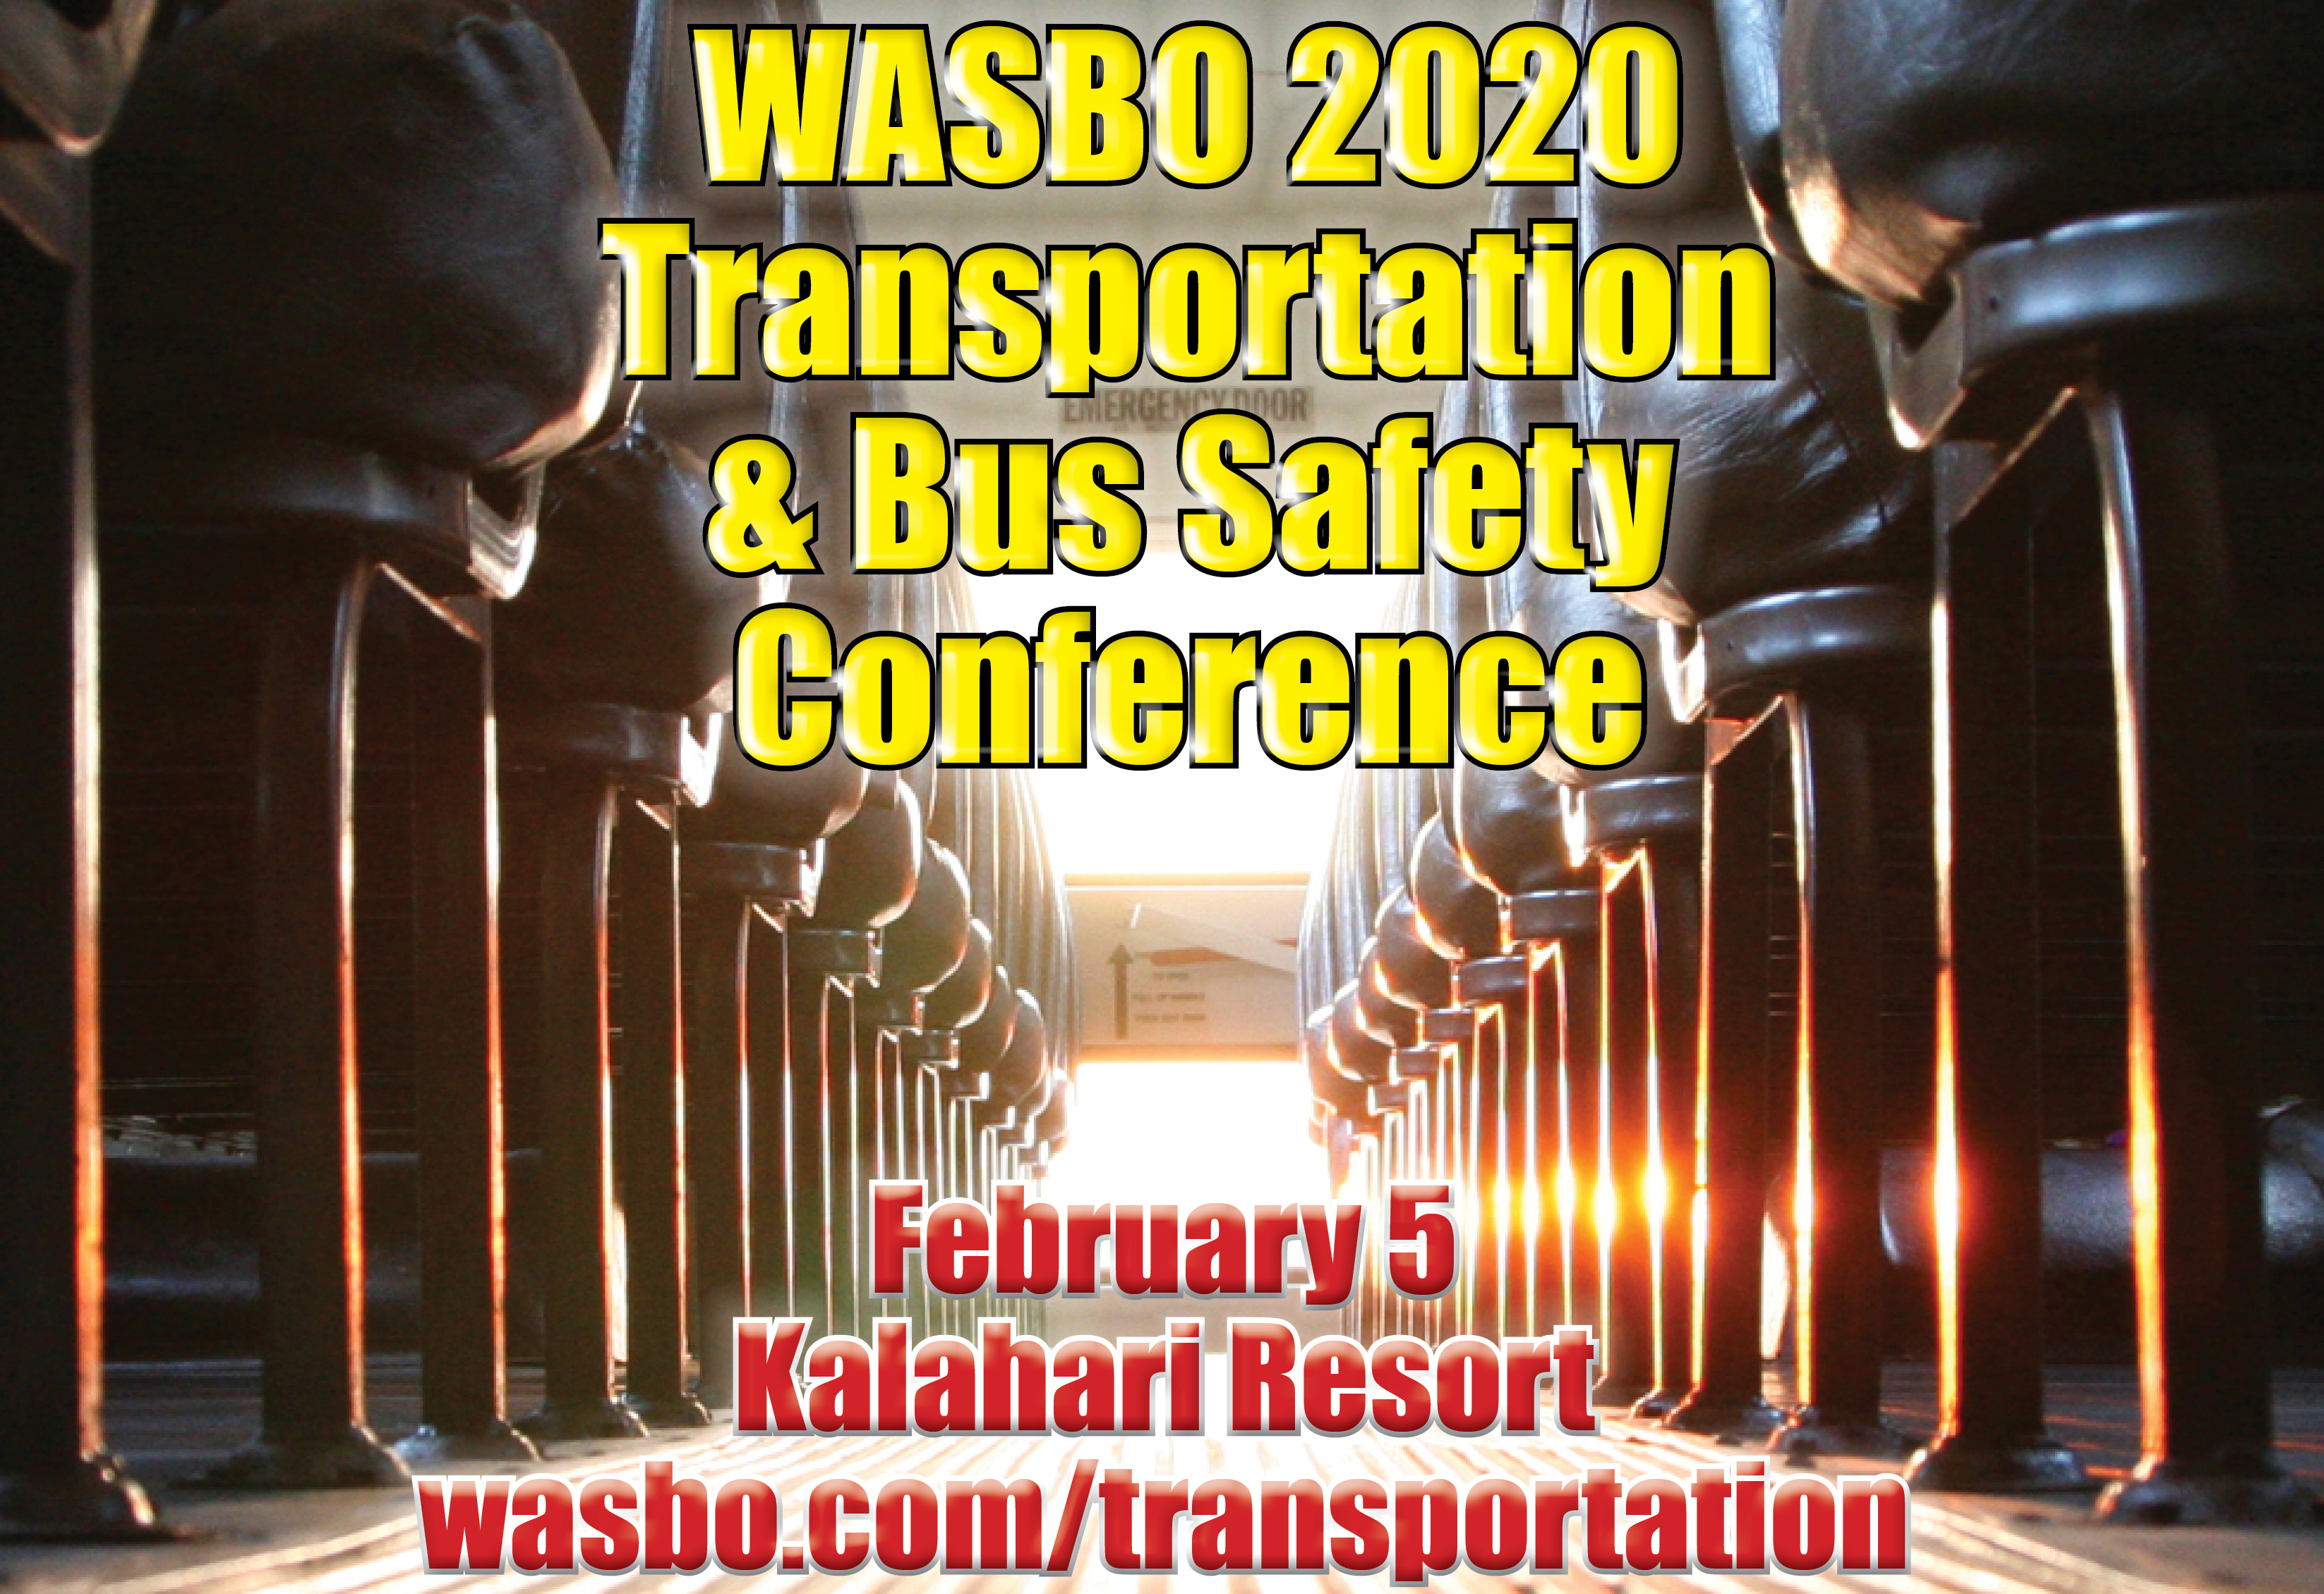 2020 Transportation & Bus Safety Conference ATTENDEE